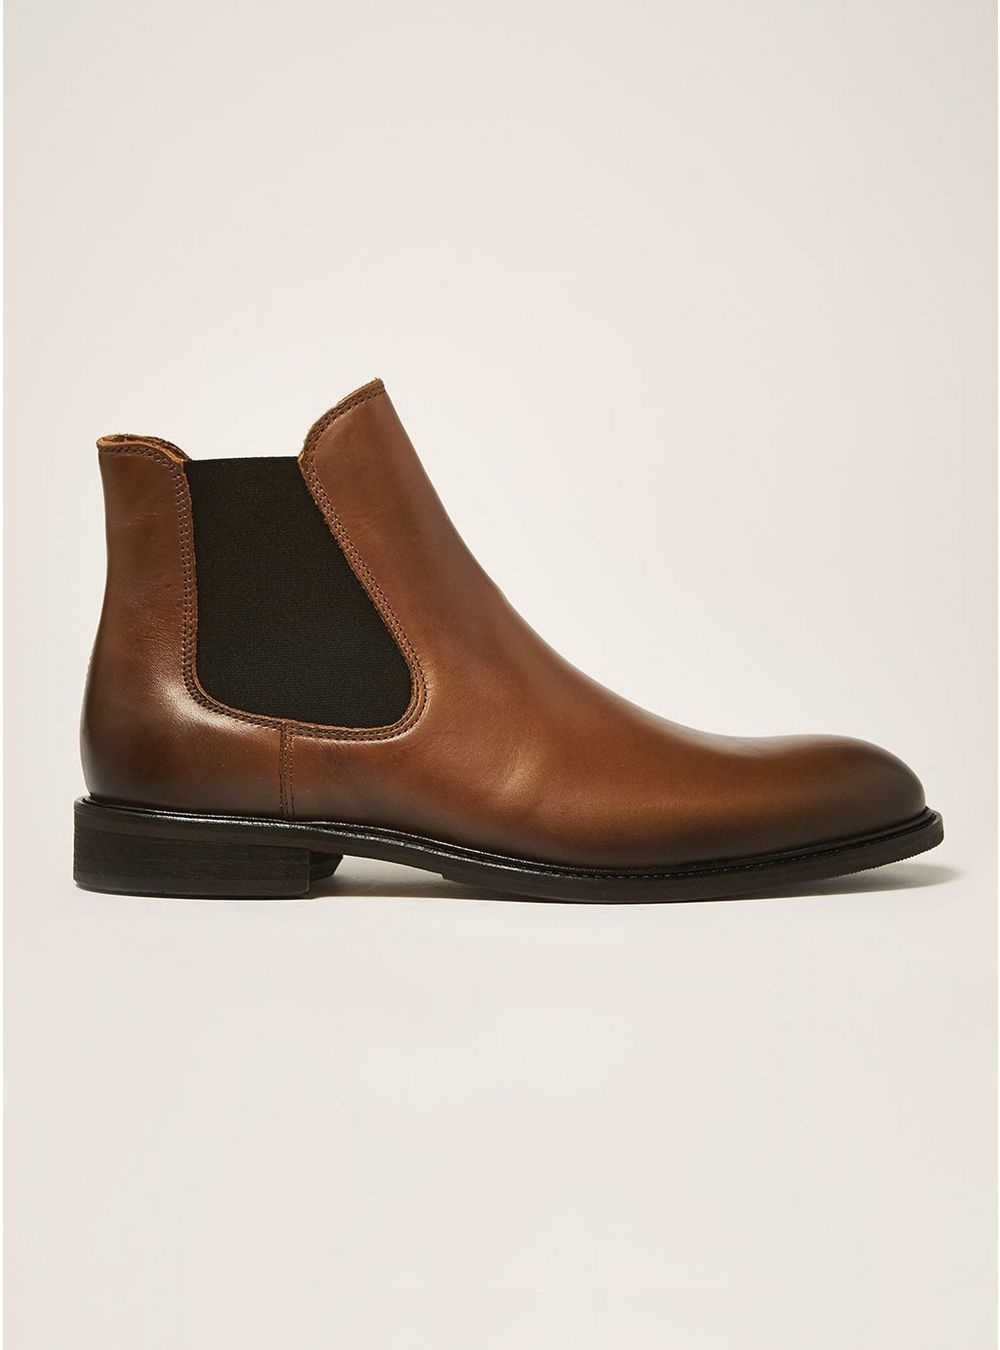 Selected Homme Tan Leather Baxter Chelsea Boots